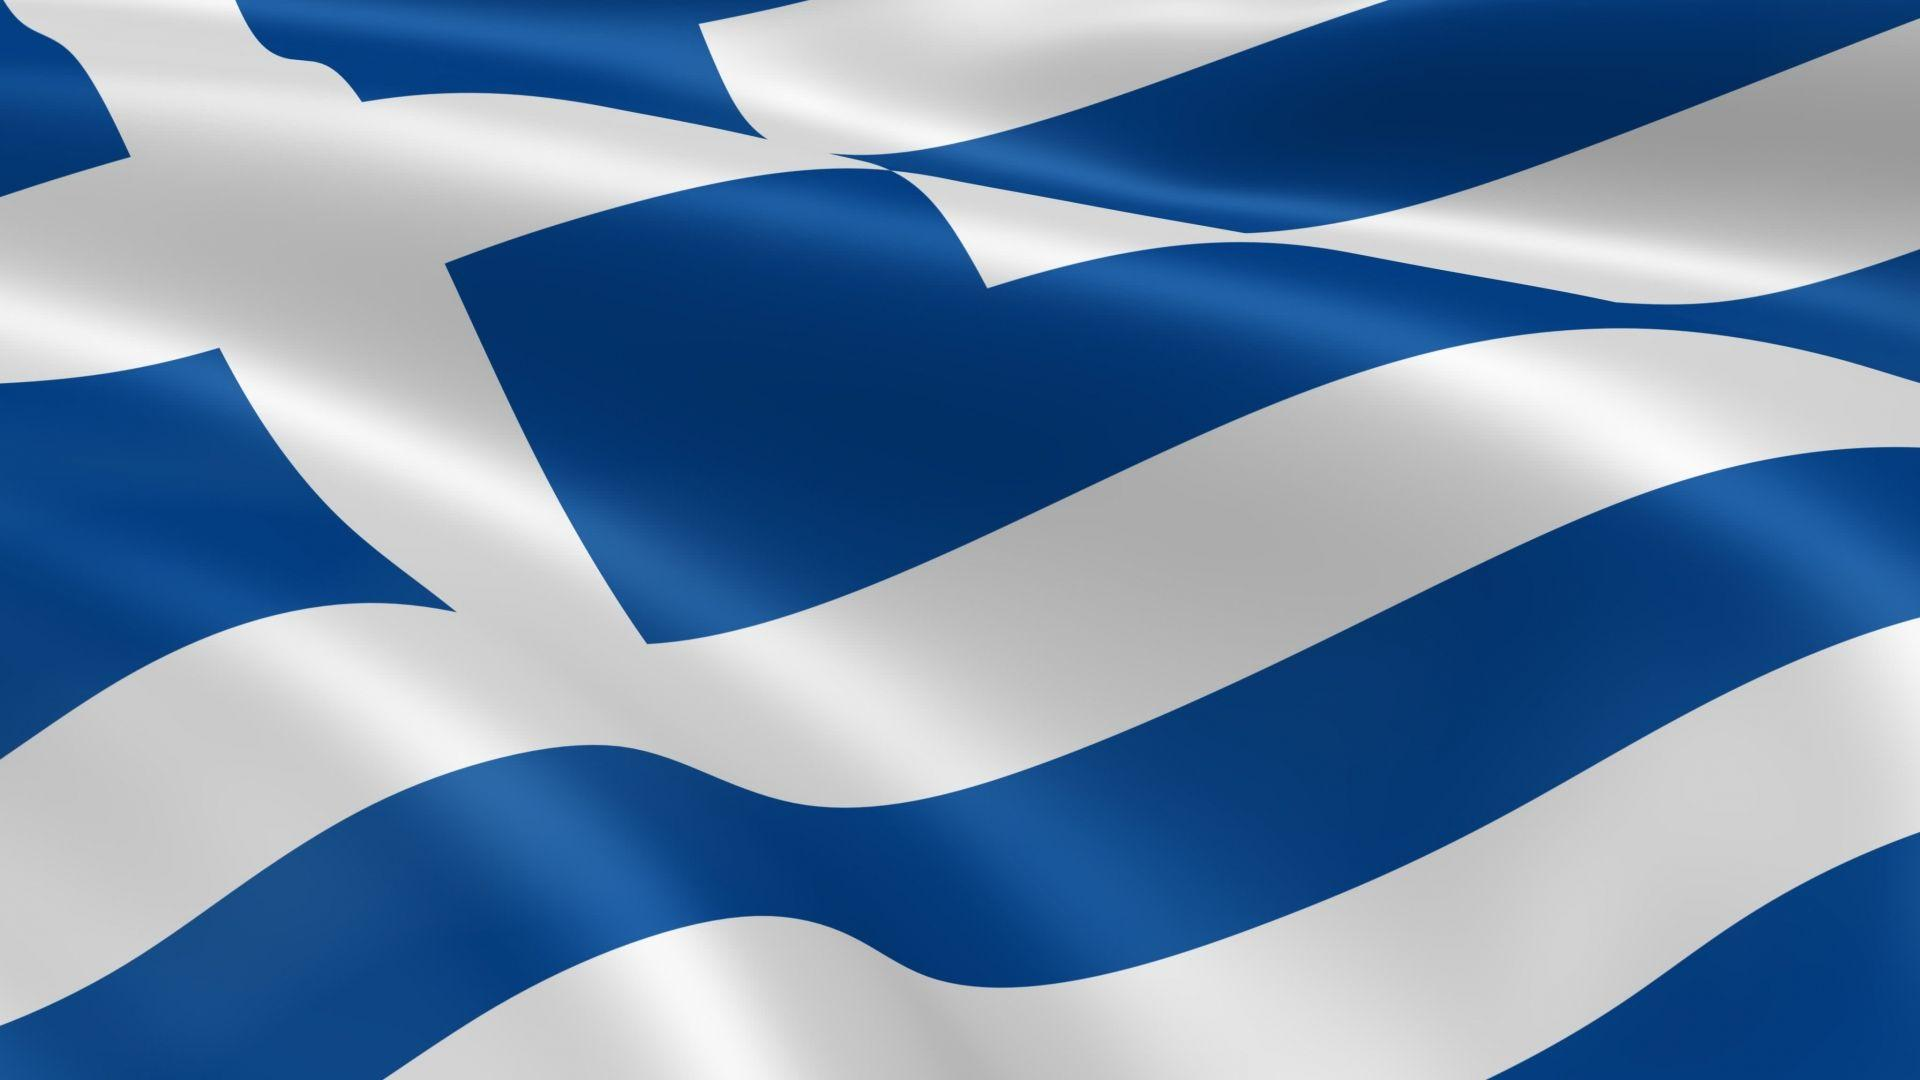 4096x2304px Greek Flag Wallpapers